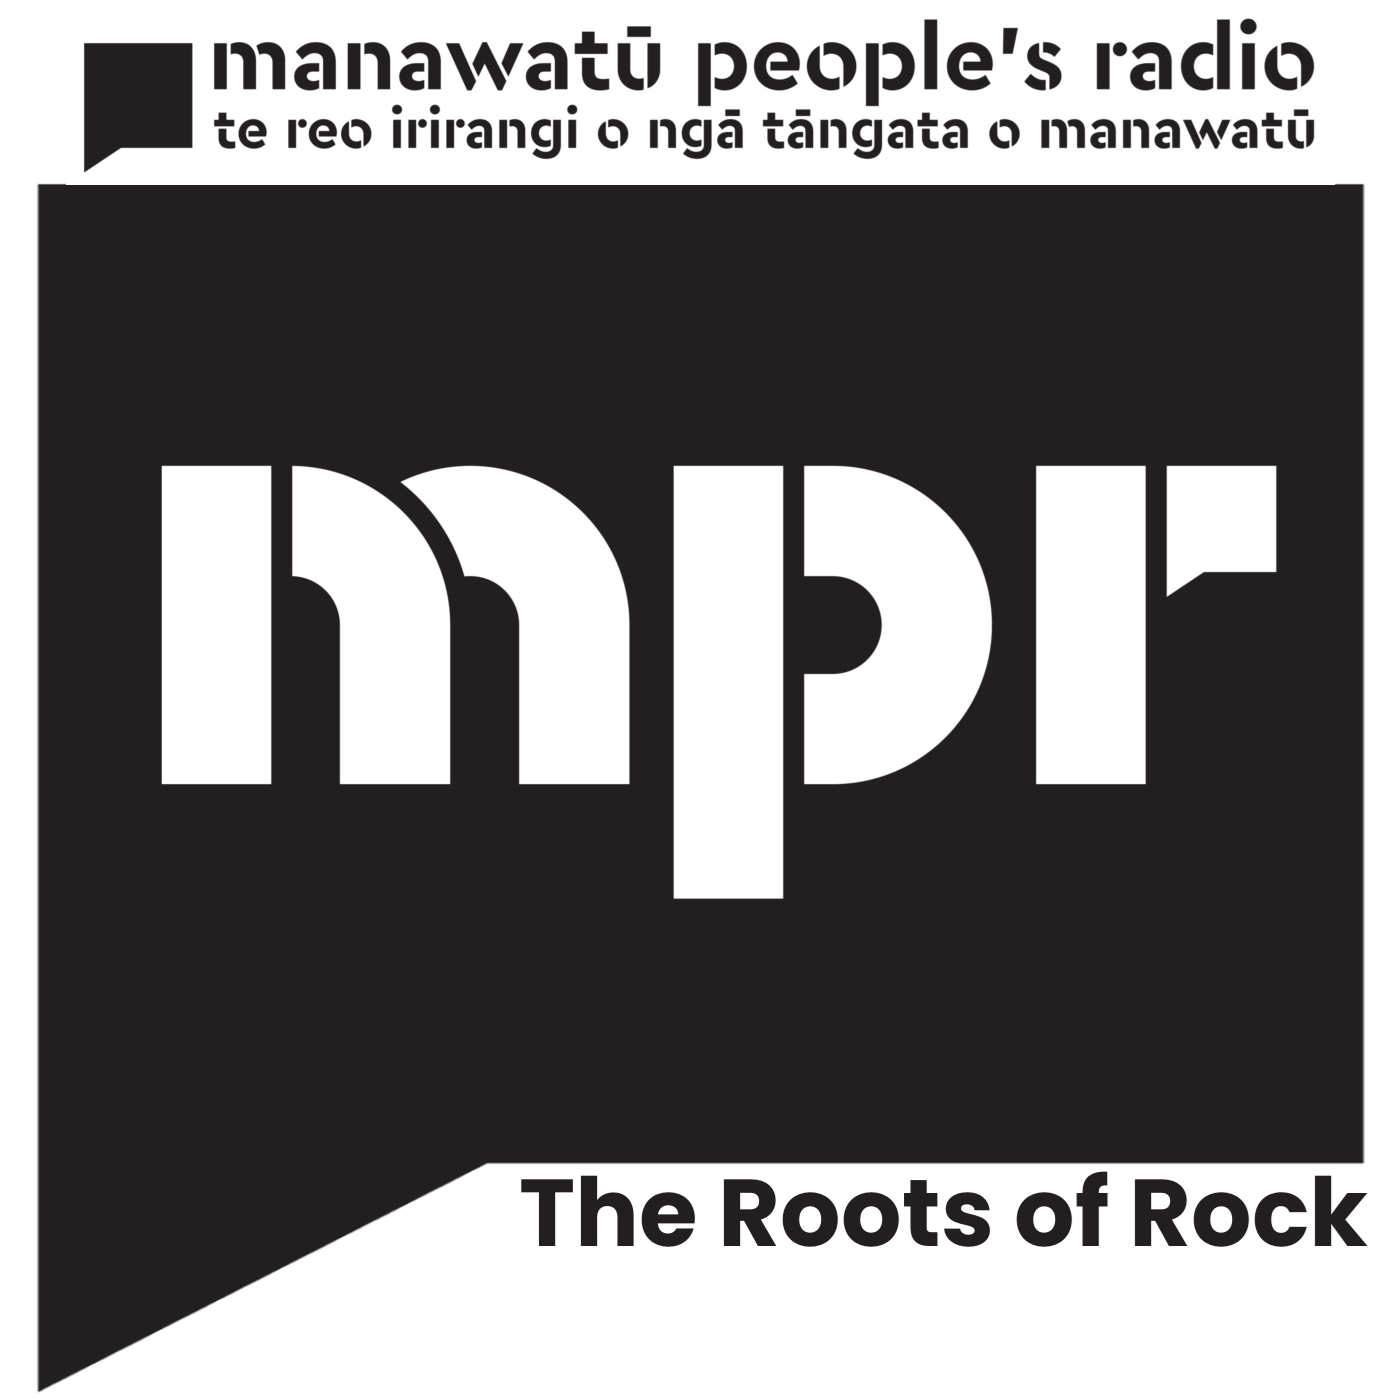 The Roots of Rock